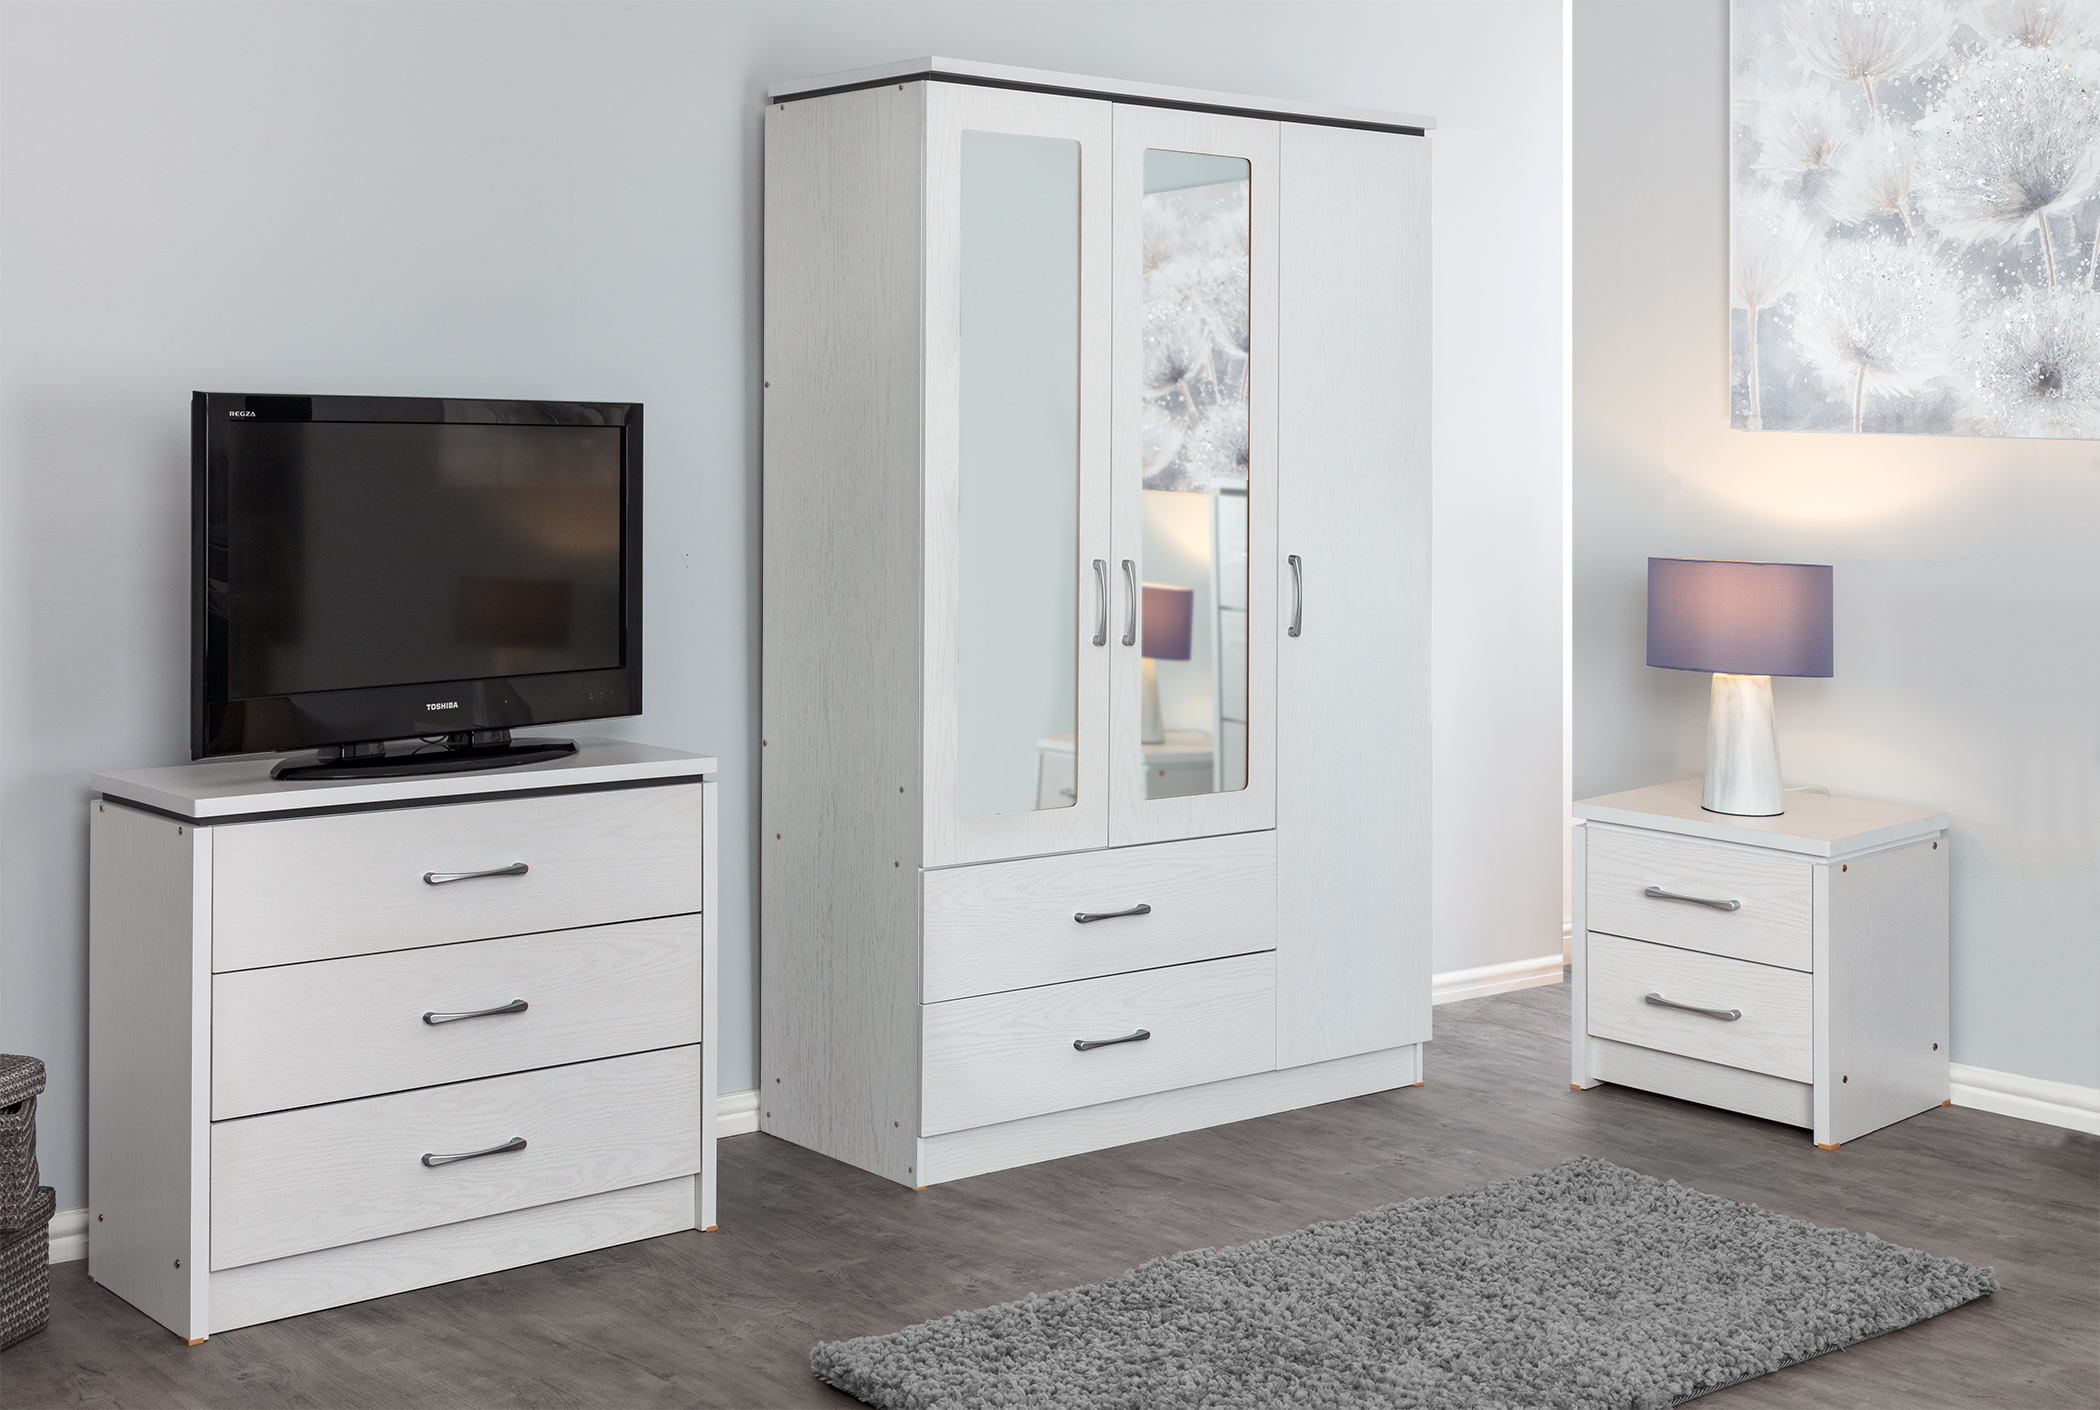 Details about White Ash Effect Large Modern Bedroom Furniture Units & Sets  FREE DELIVERY